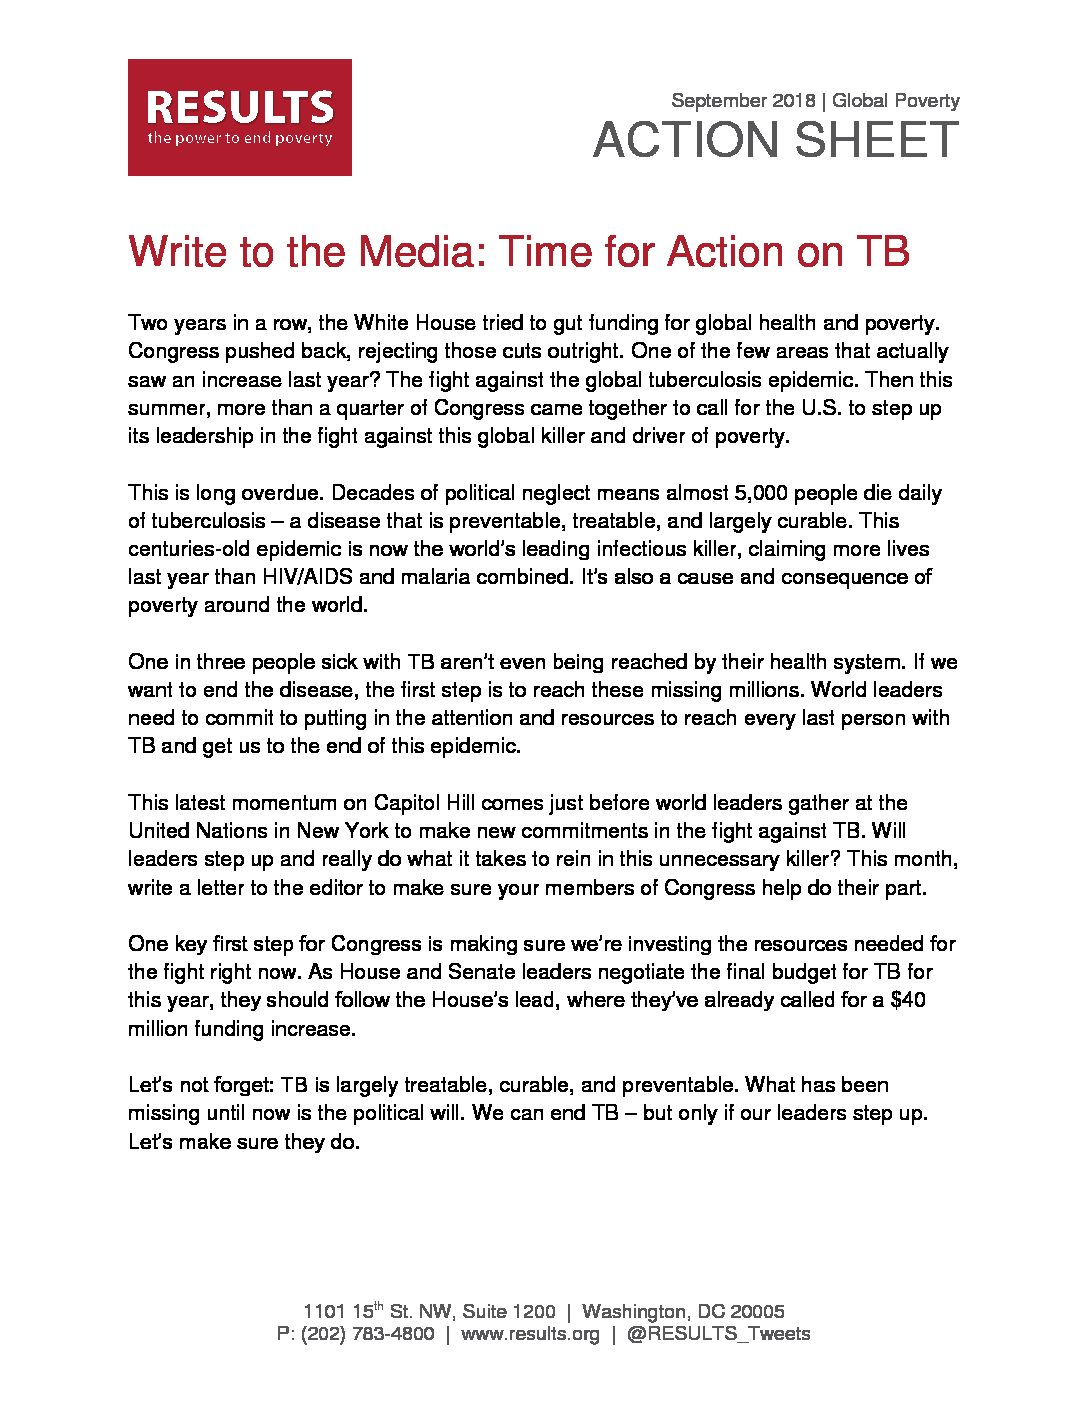 September 2018 Global Action Sheet Write An LTE On TB